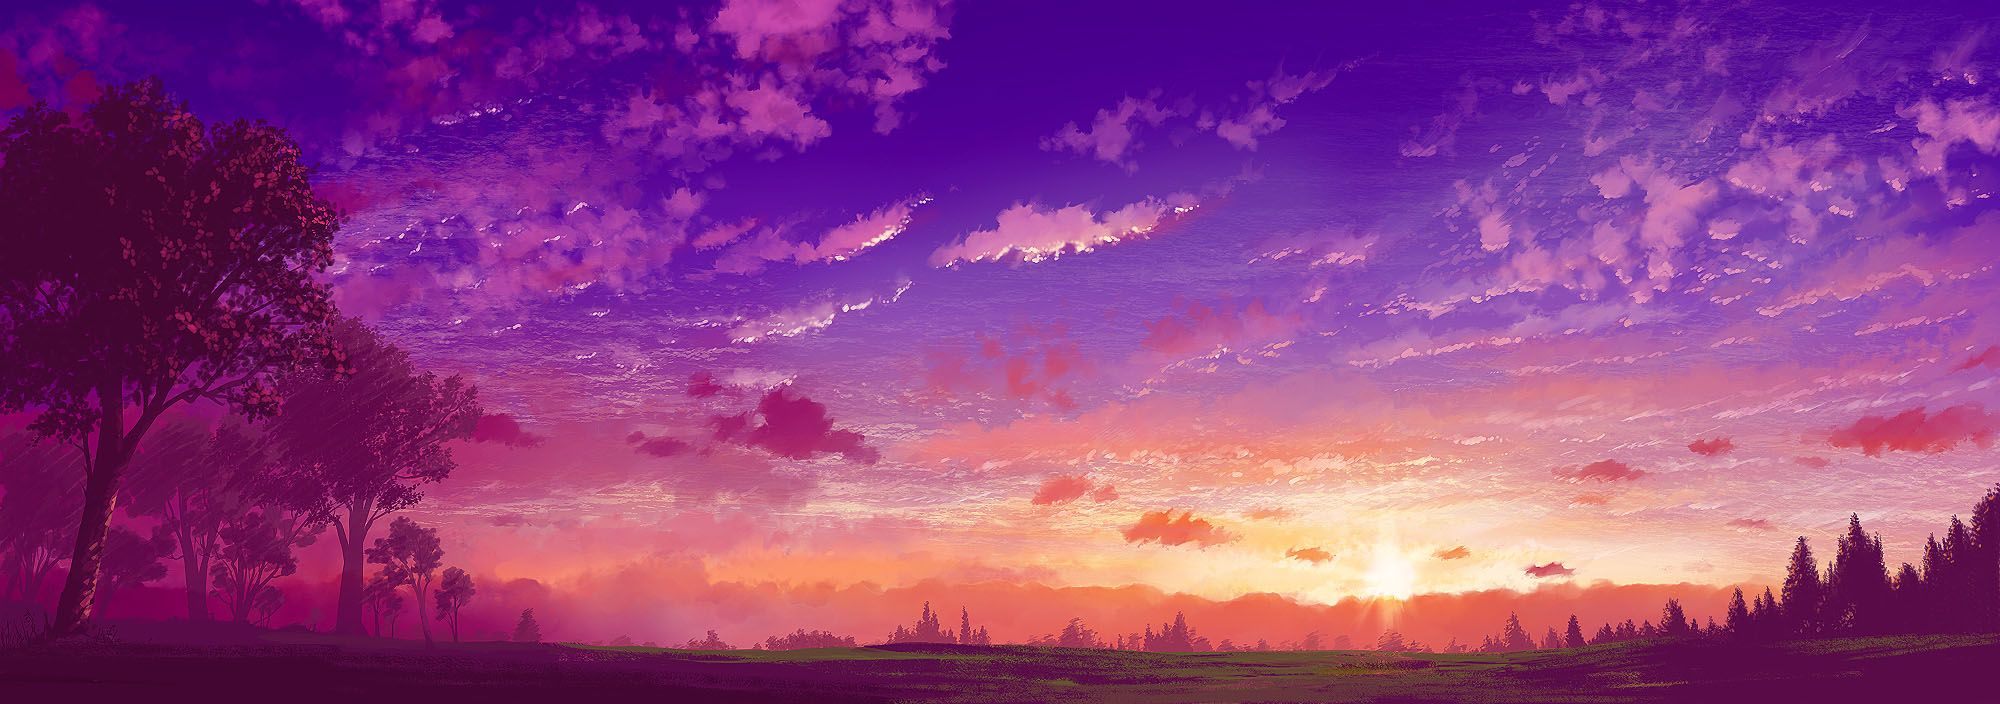 Pink Anime Scenery Wallpapers Top Free Pink Anime Scenery